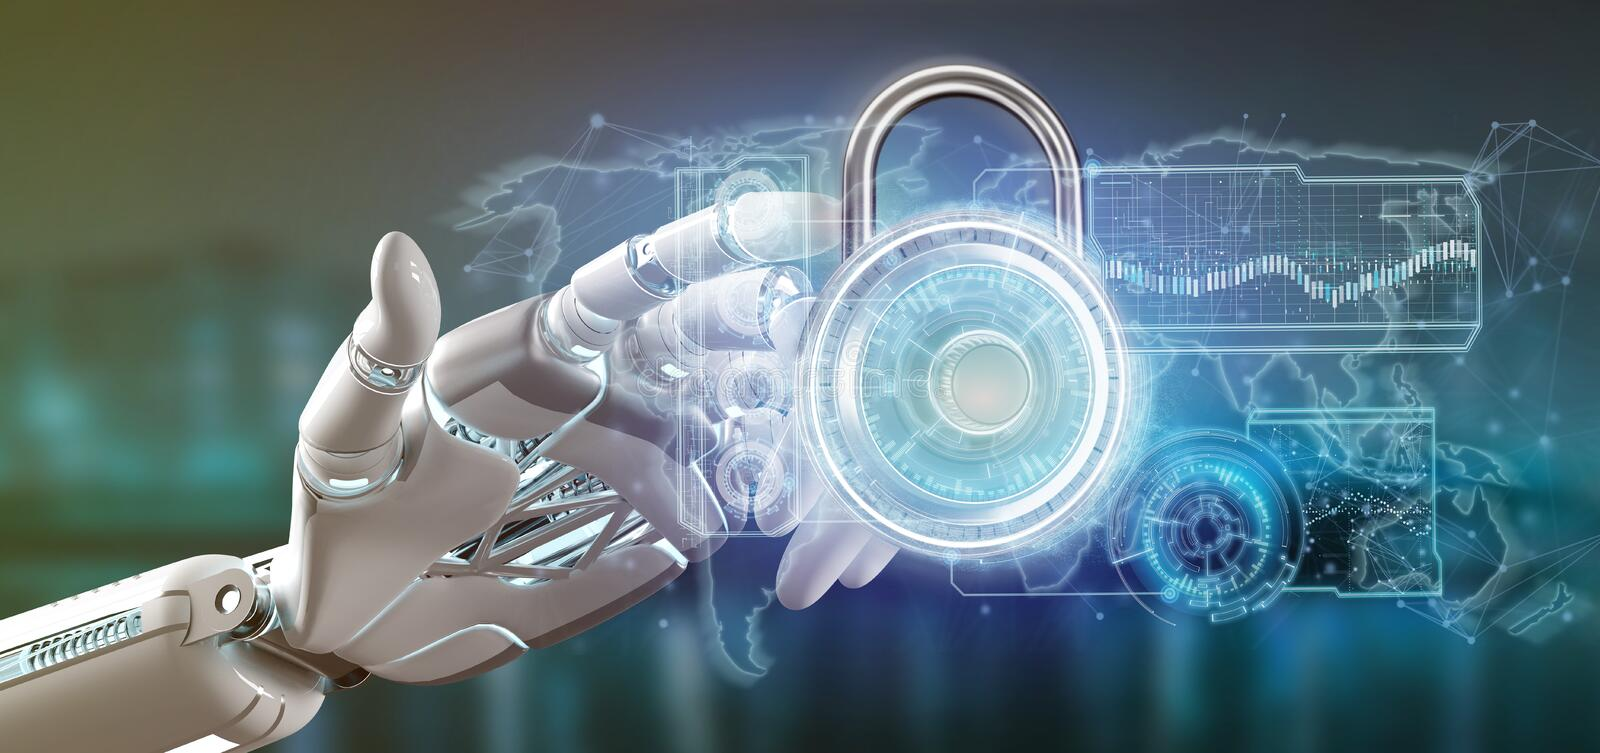 Cyborg hand holding a Padlock security technology interface 3d rendering. View of a Cyborg hand holding a Padlock security technology interface 3d rendering stock illustration